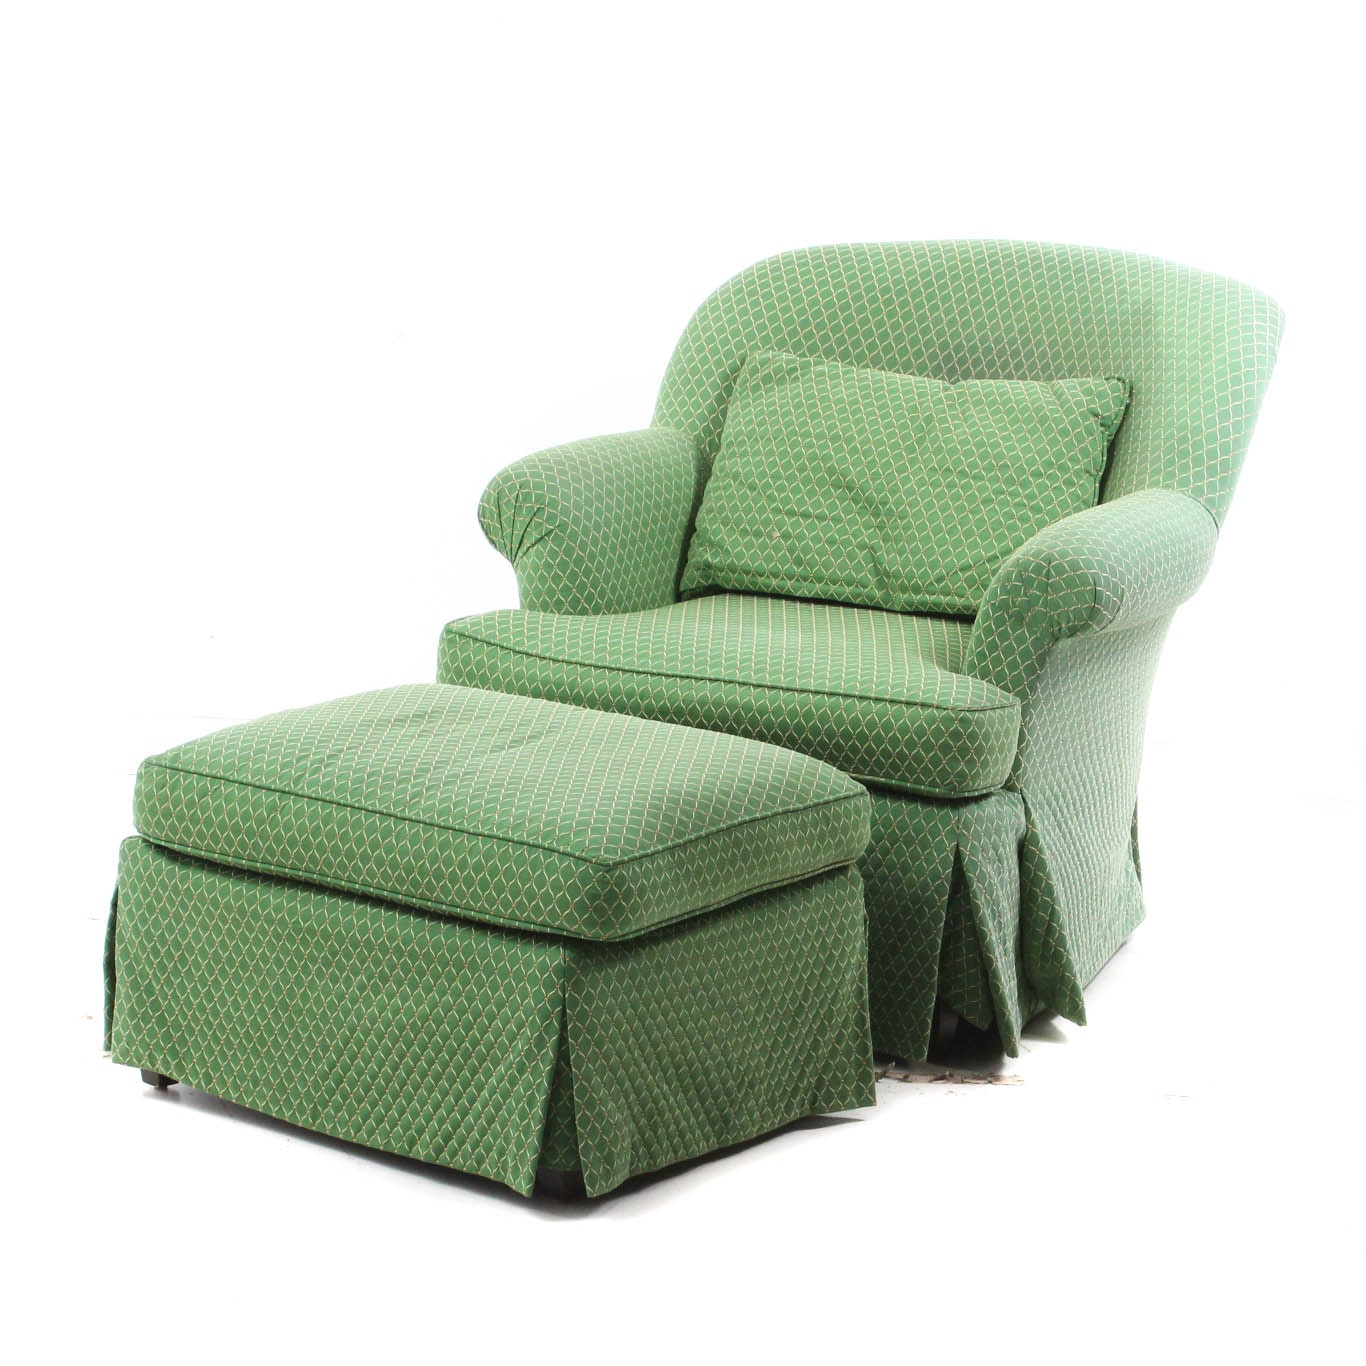 Green Custom Upholstered Chair and Ottoman